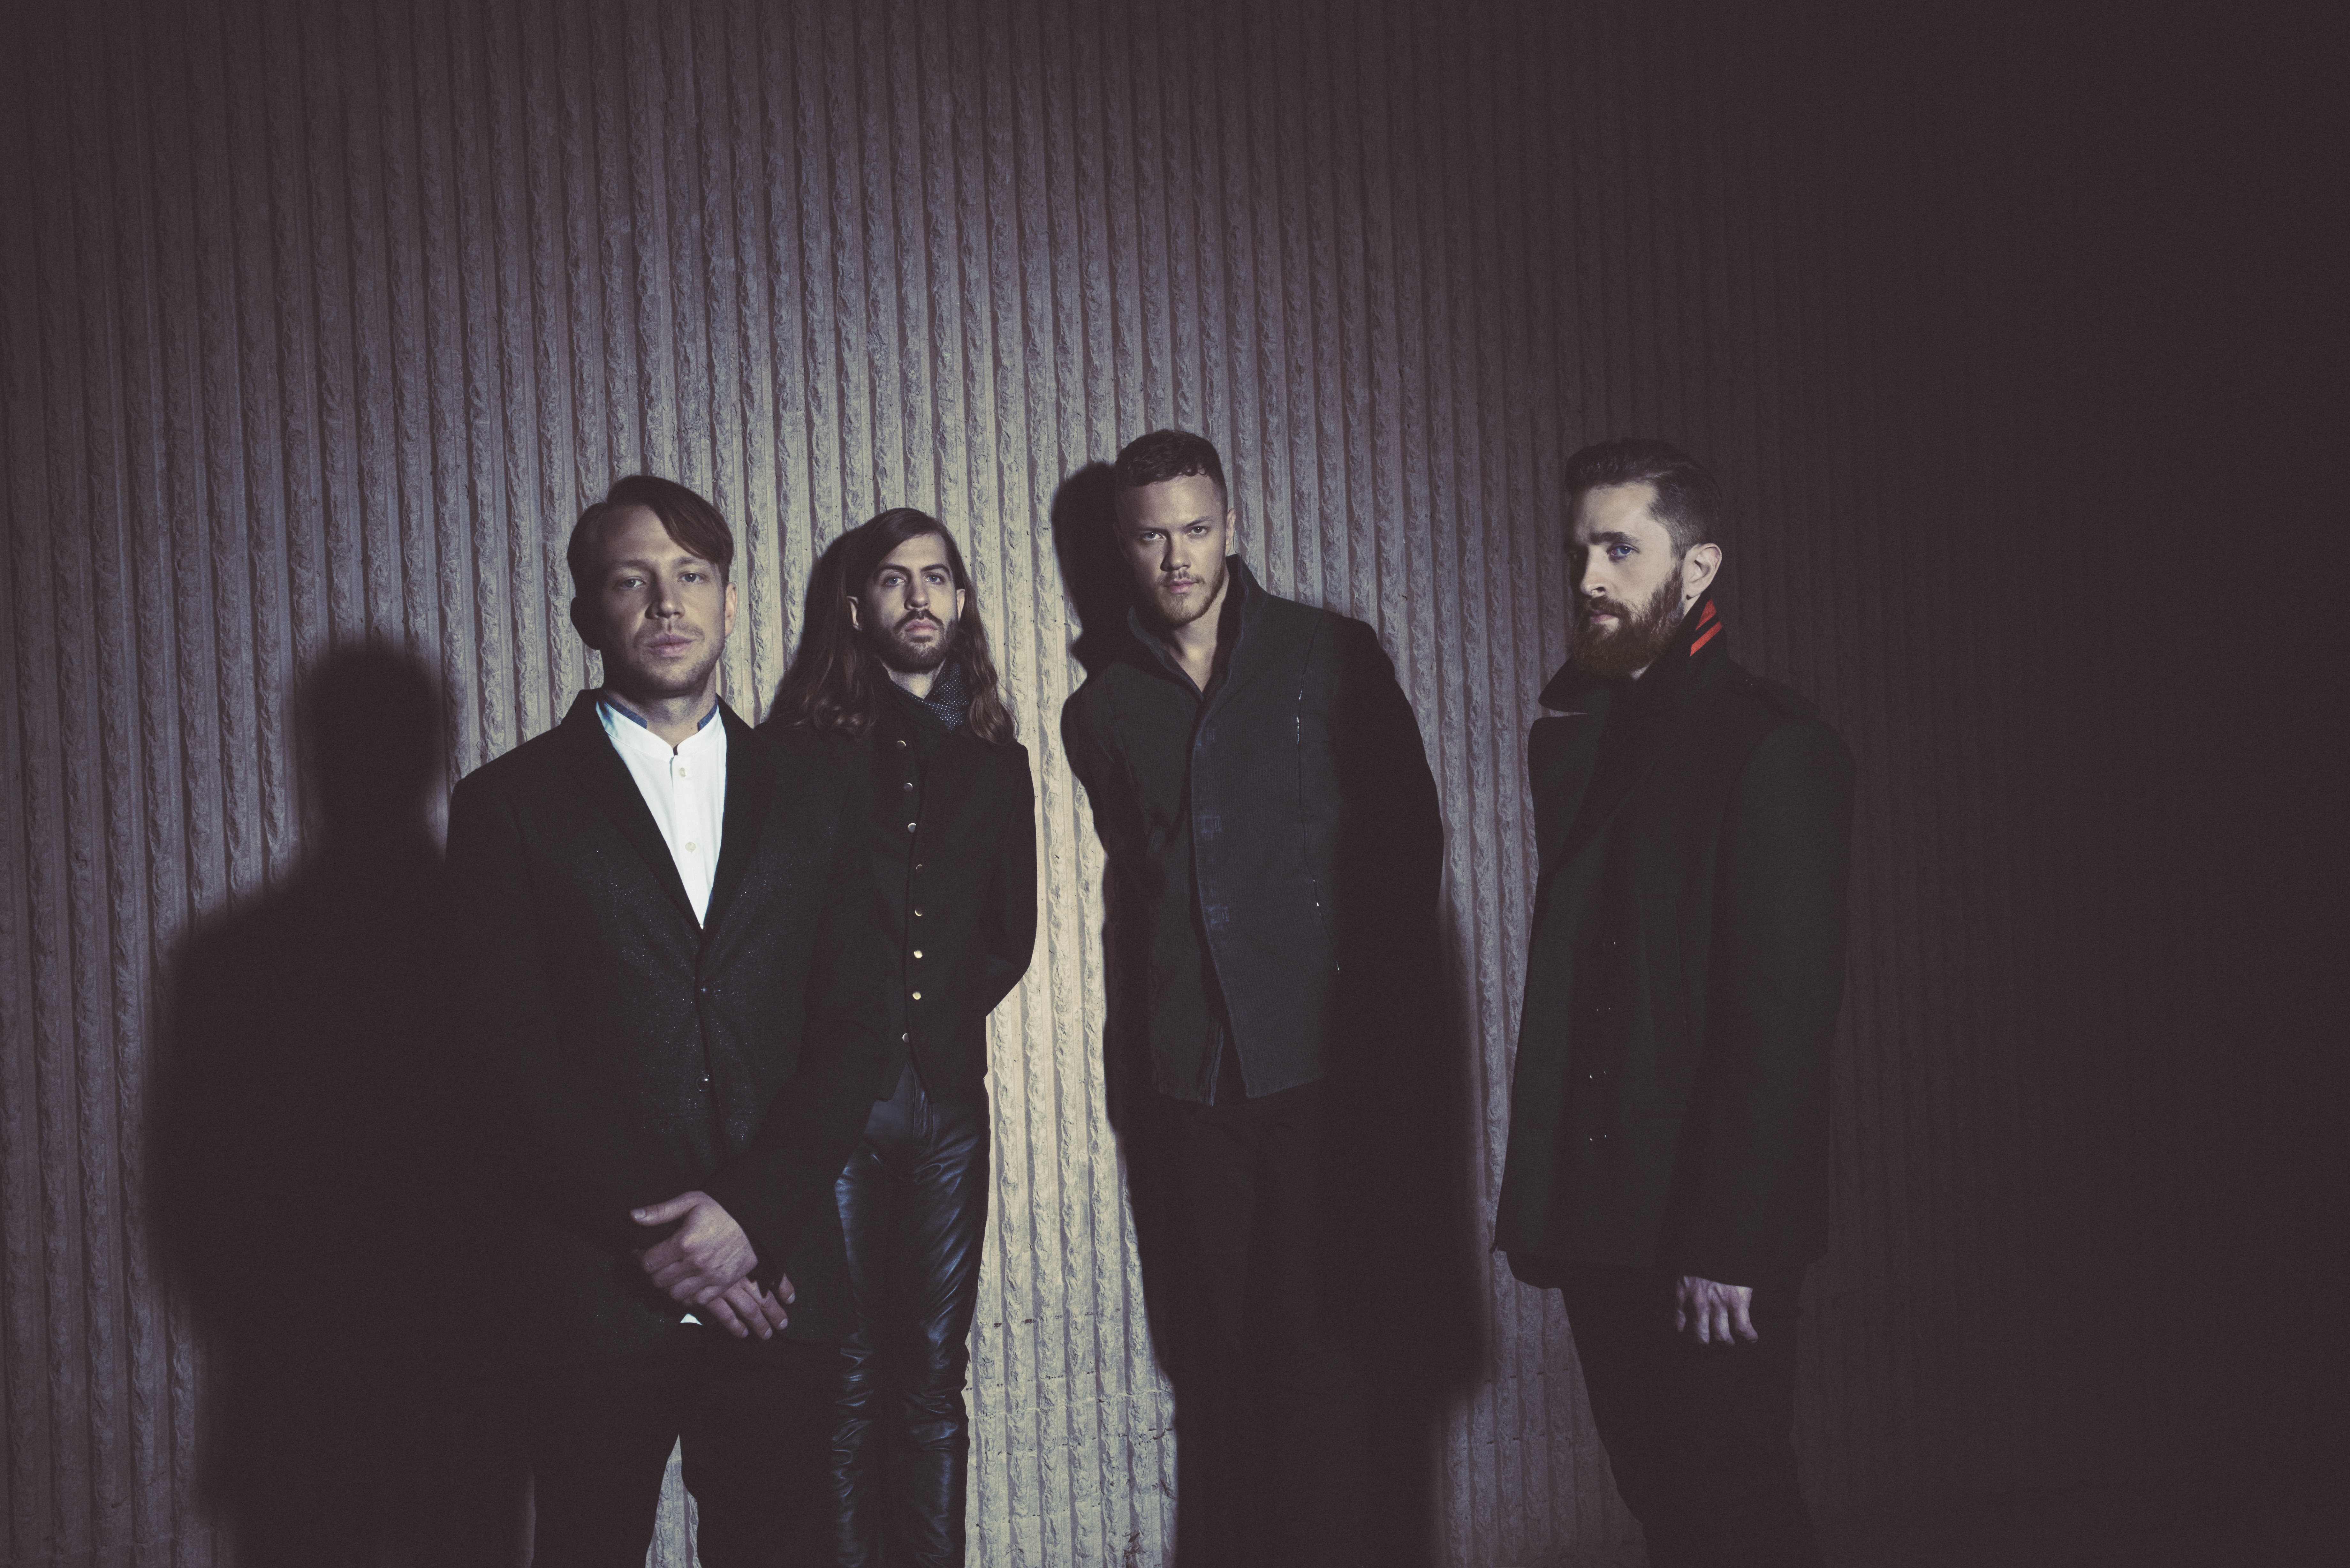 See Grammy-award winning rockers Imagine Dragons in an exclusive performance at IBM Insight at World of Watson.